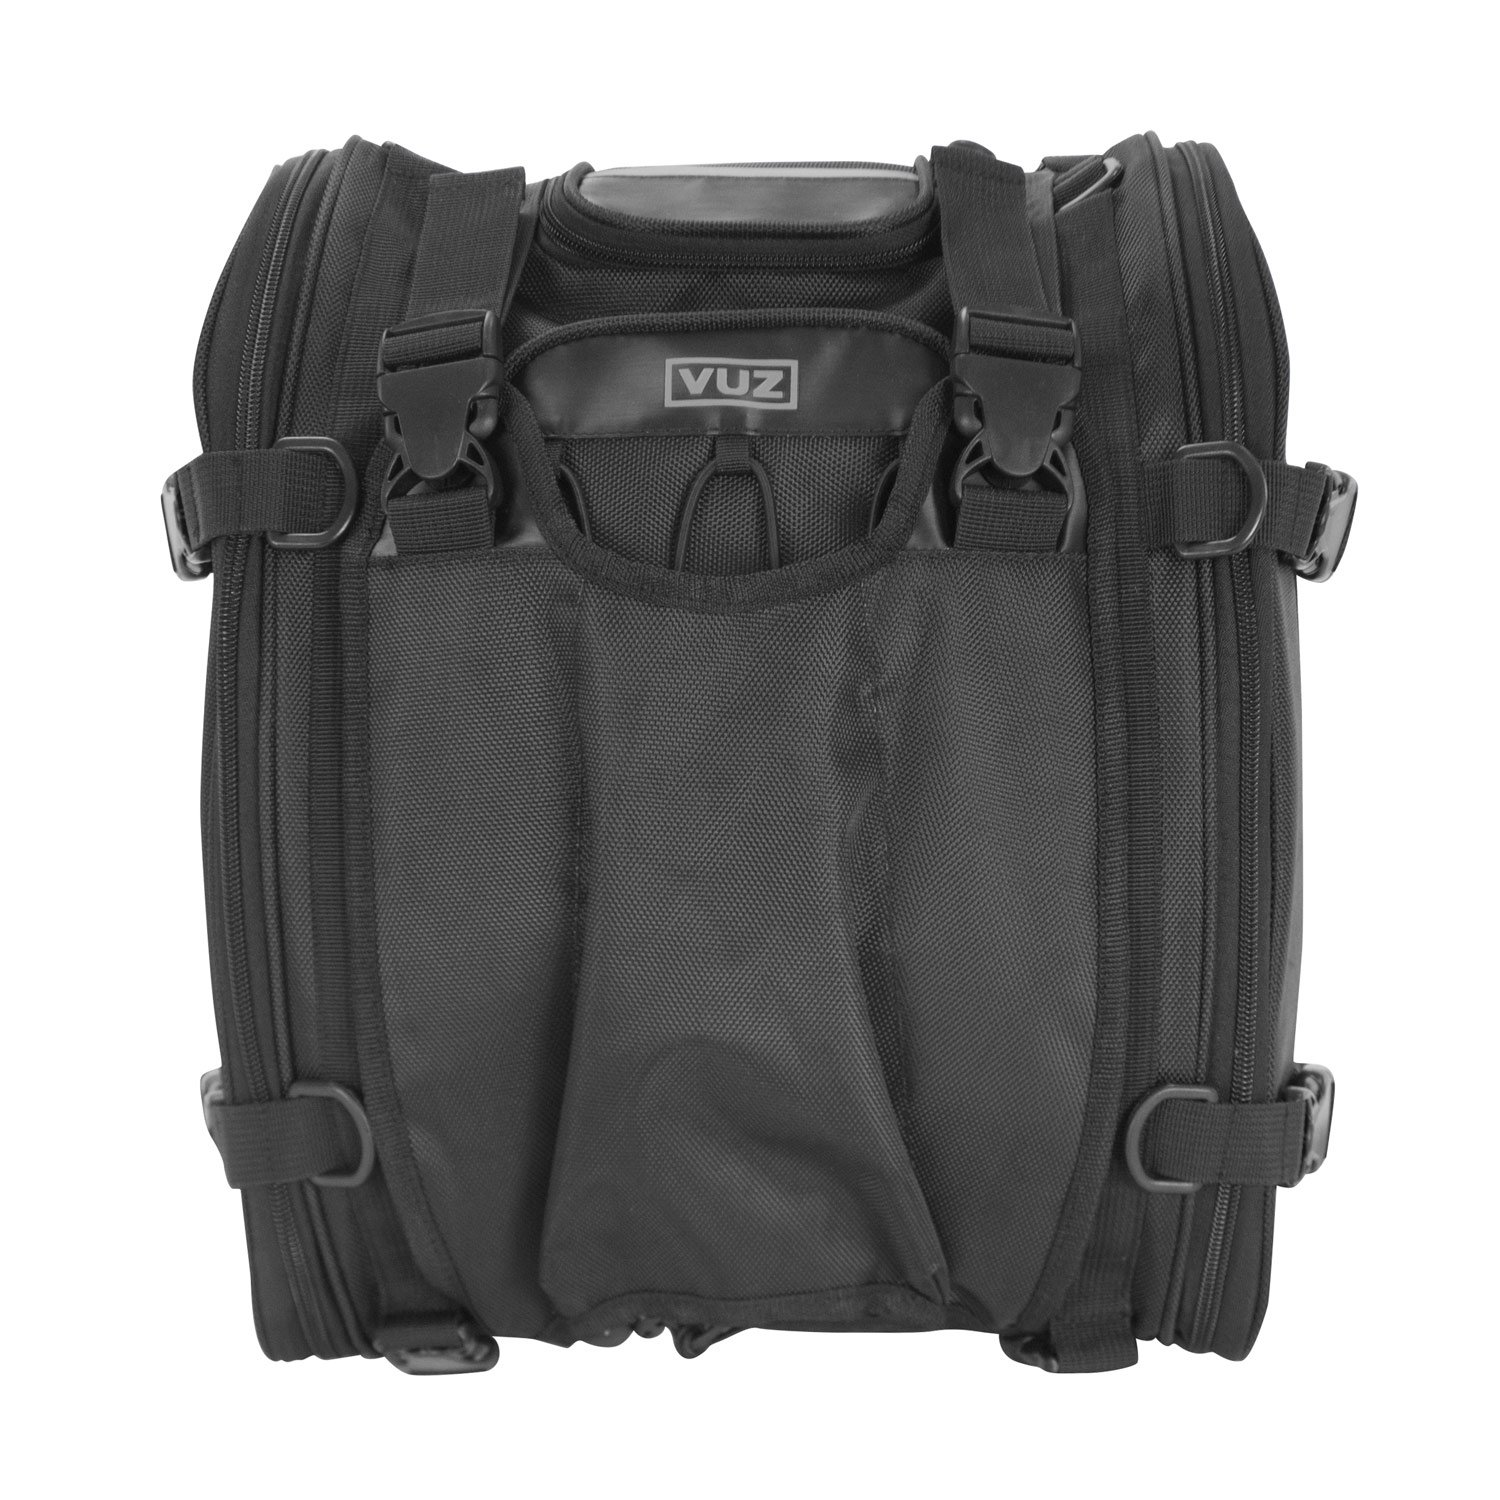 Vuz Moto Expandable Motorcycle Tail Bag | Waterproof Motorcycle Luggage | For a Adventure and Urban Riders